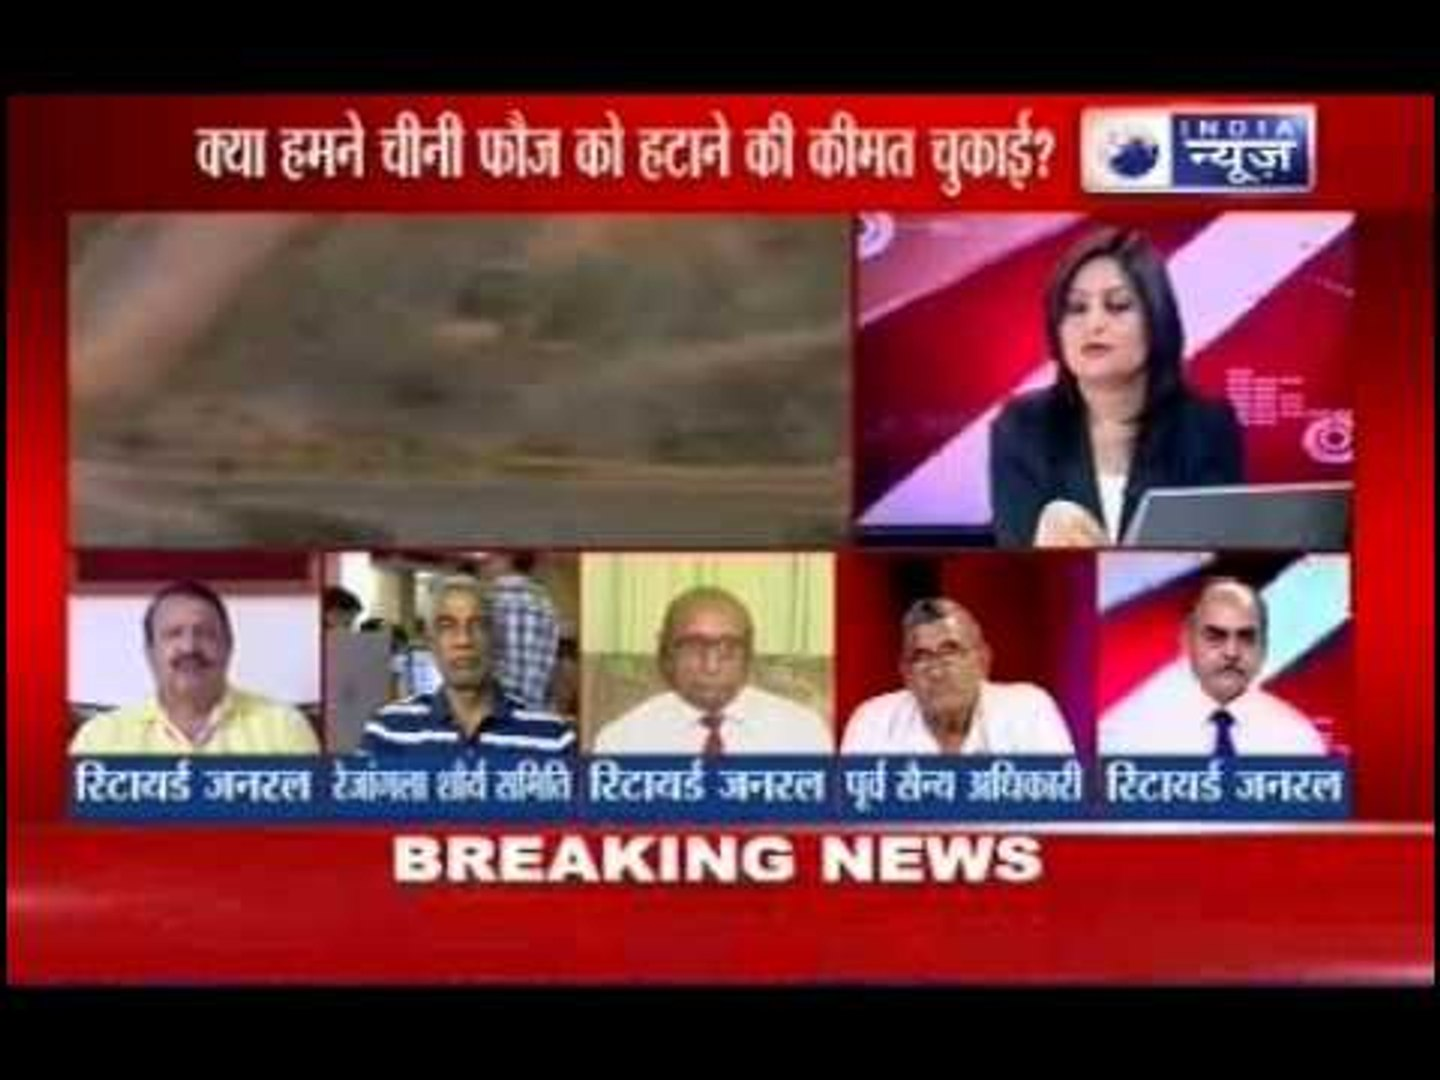 India News: India shoots down 'deal' talk over China incursion